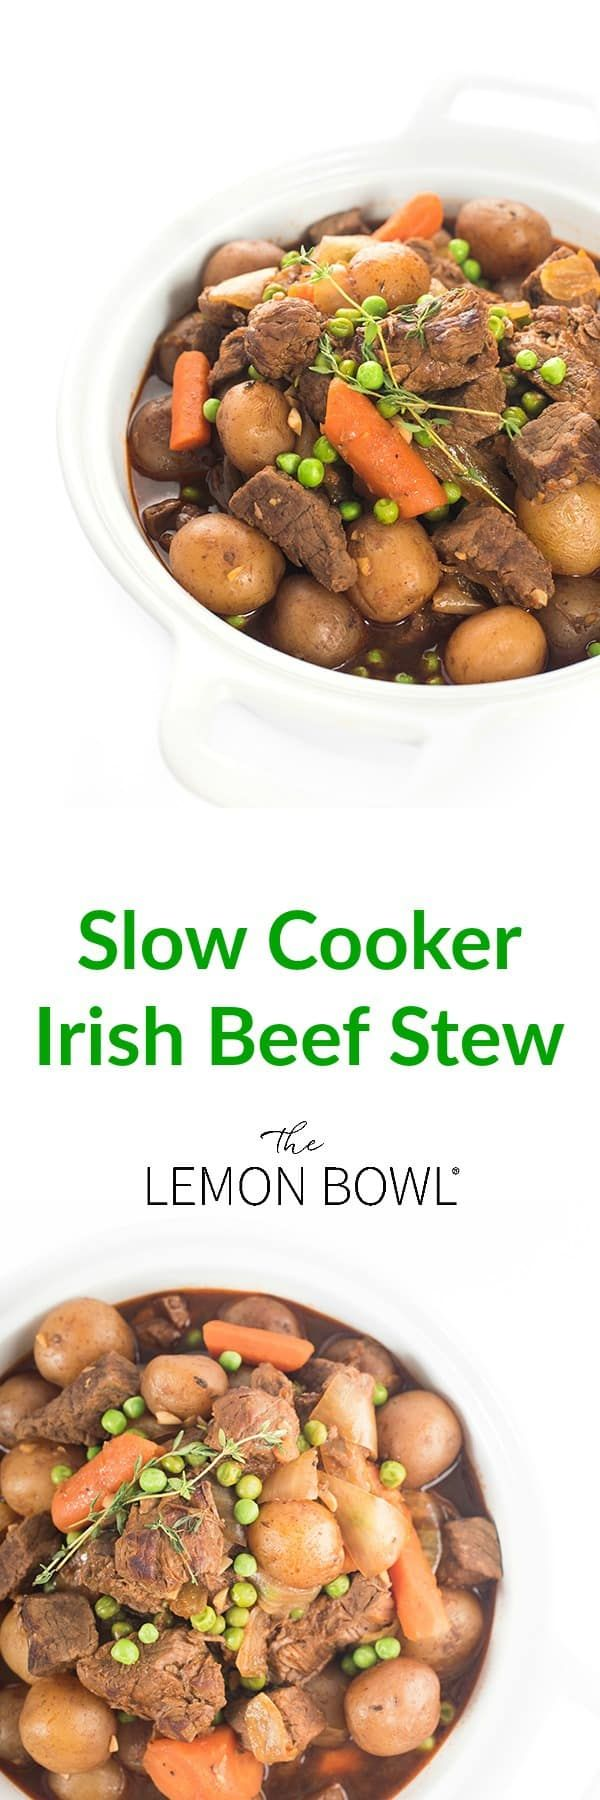 The ultimate one-pot dinner recipe, this slow cooker Irish stew is filled with hearty vegetables, creamy potatoes and tender beef.